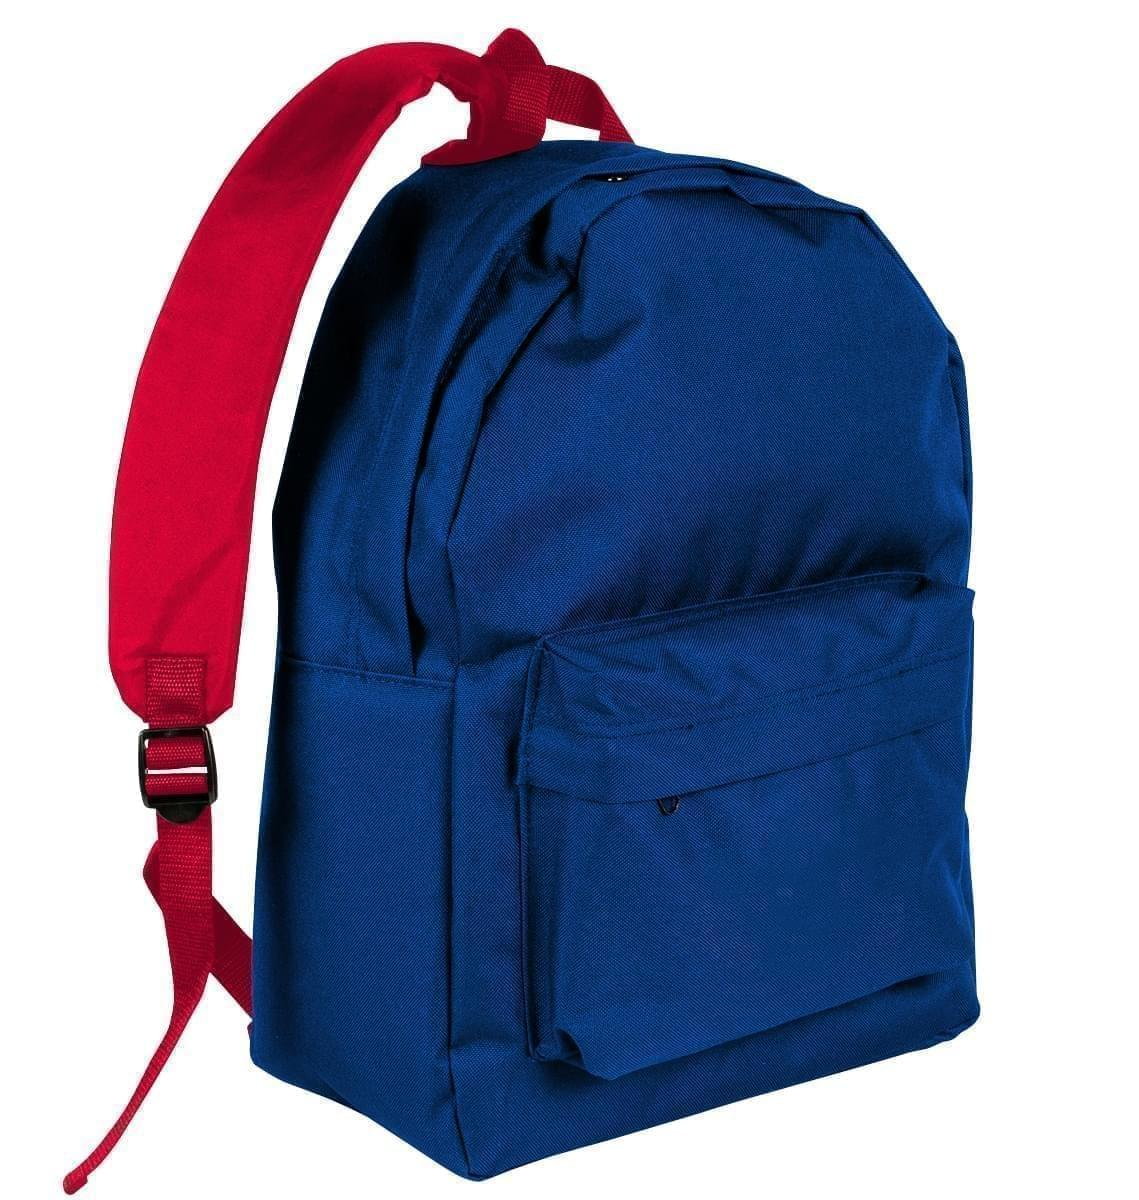 USA Made Nylon Poly Backpack Knapsacks, Royal Blue-Red, 8960-A02